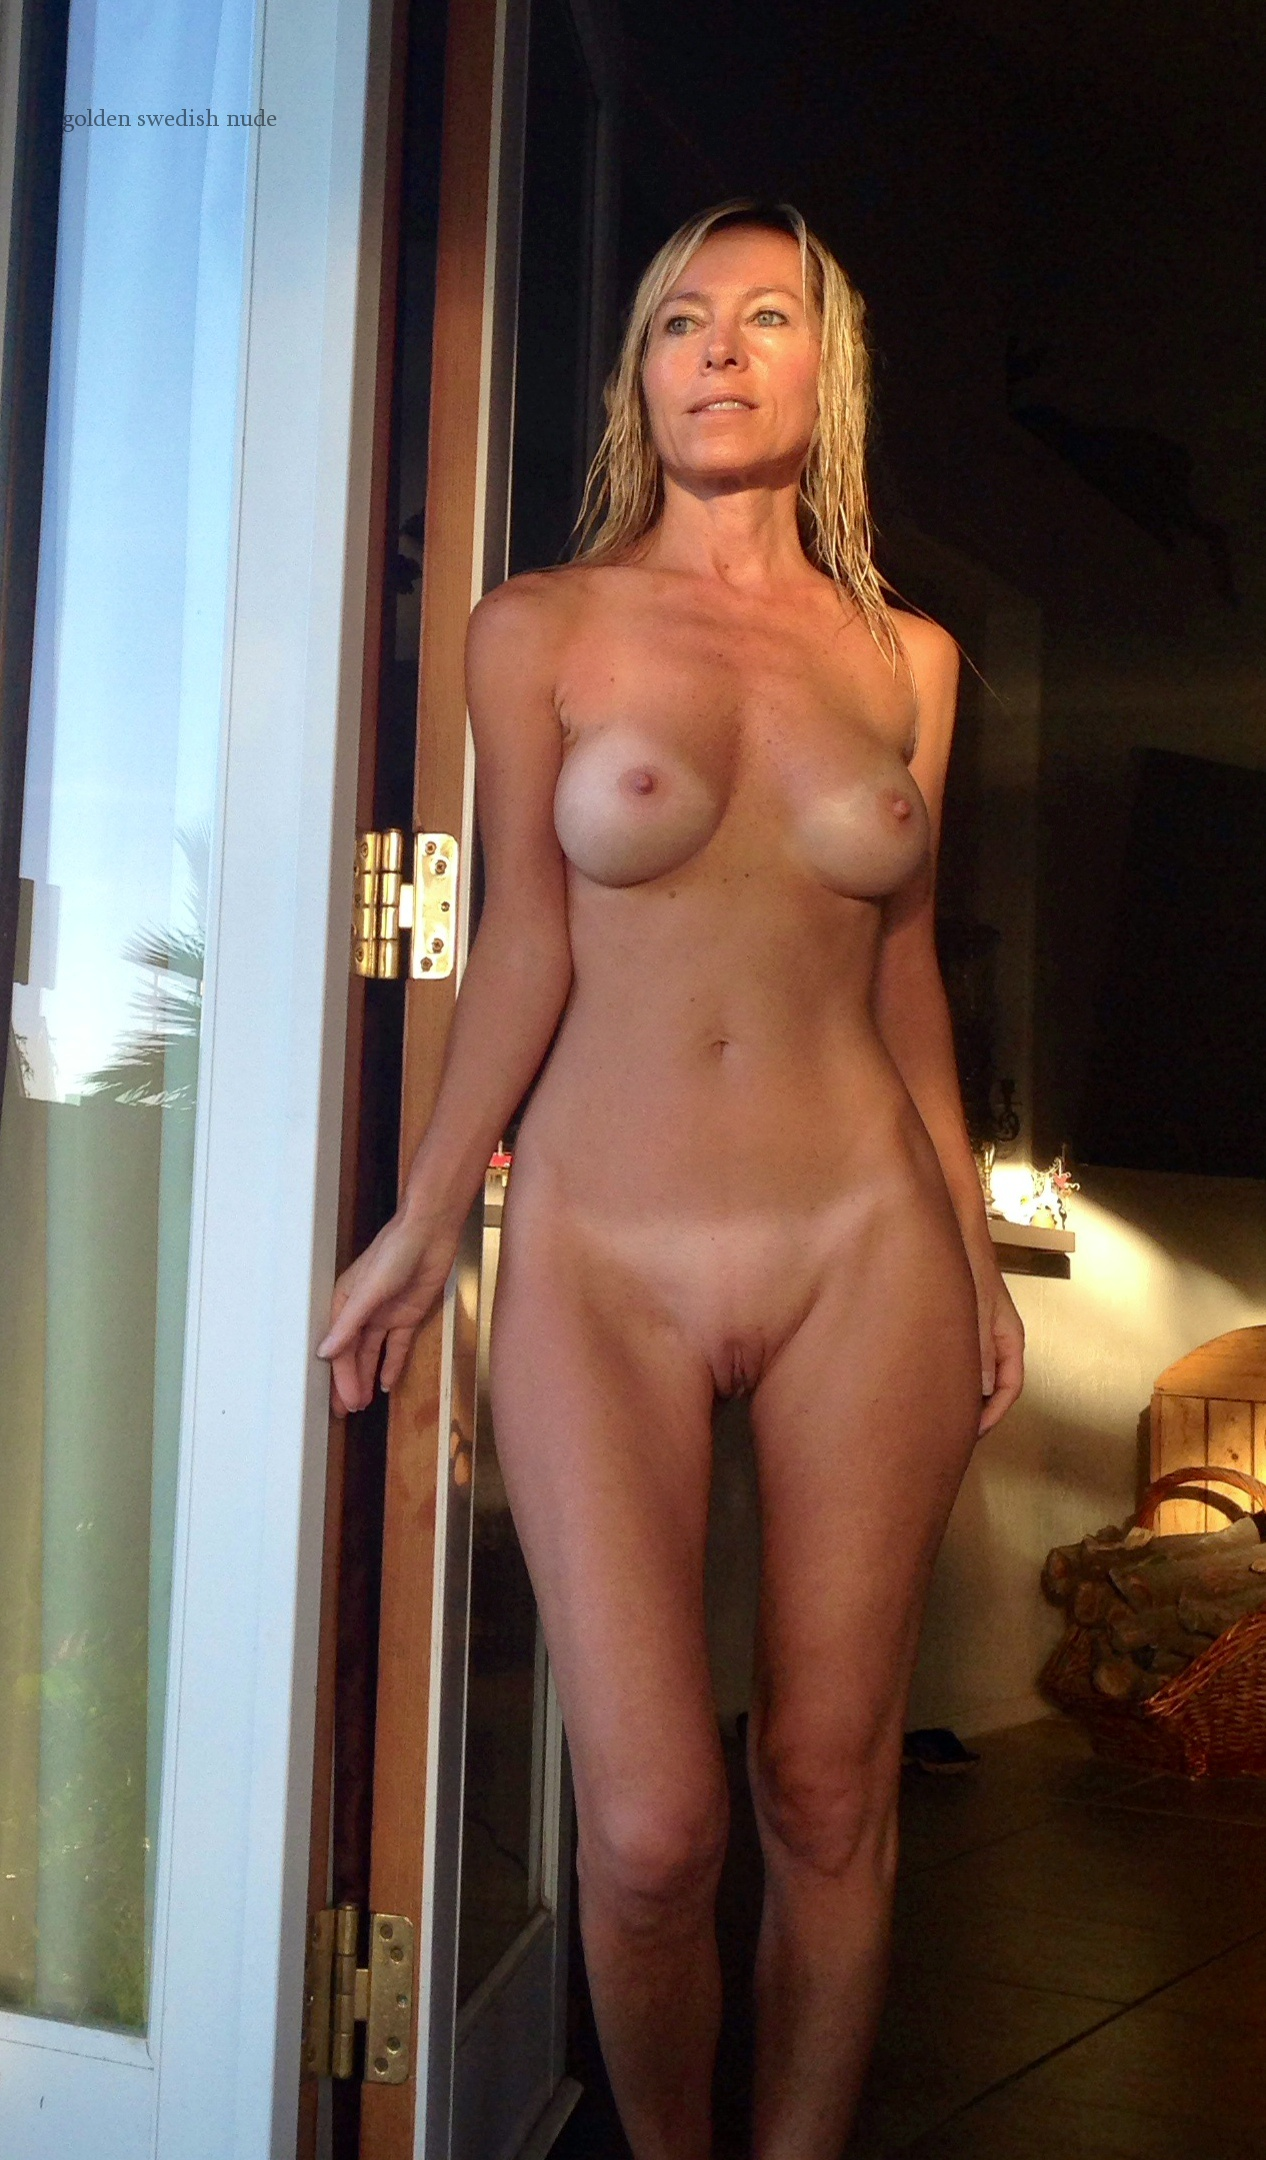 Sexy nude sweden woman — 1